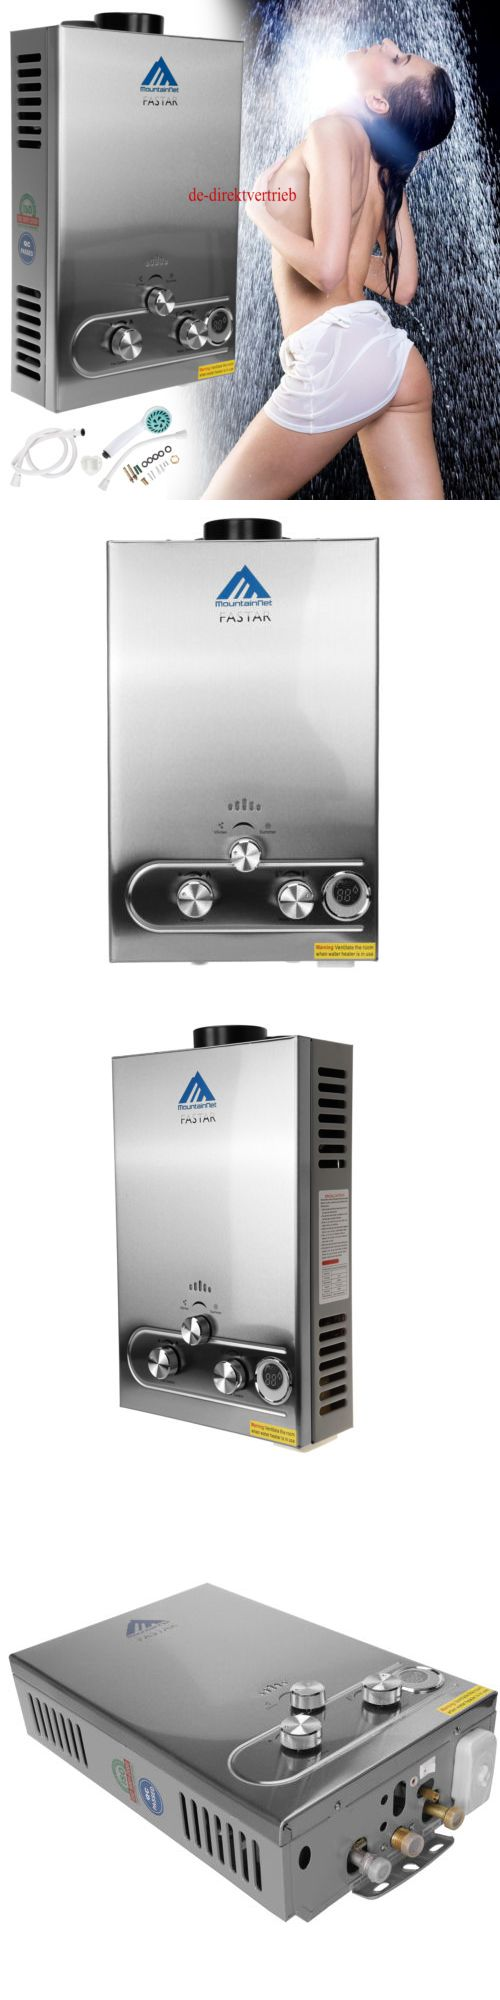 Pros and cons of gas tankless water heaters - Tankless Water Heaters 115967 8l Gas Tankless Instant Water Heater Boiler Lpg Propane Steel Panel